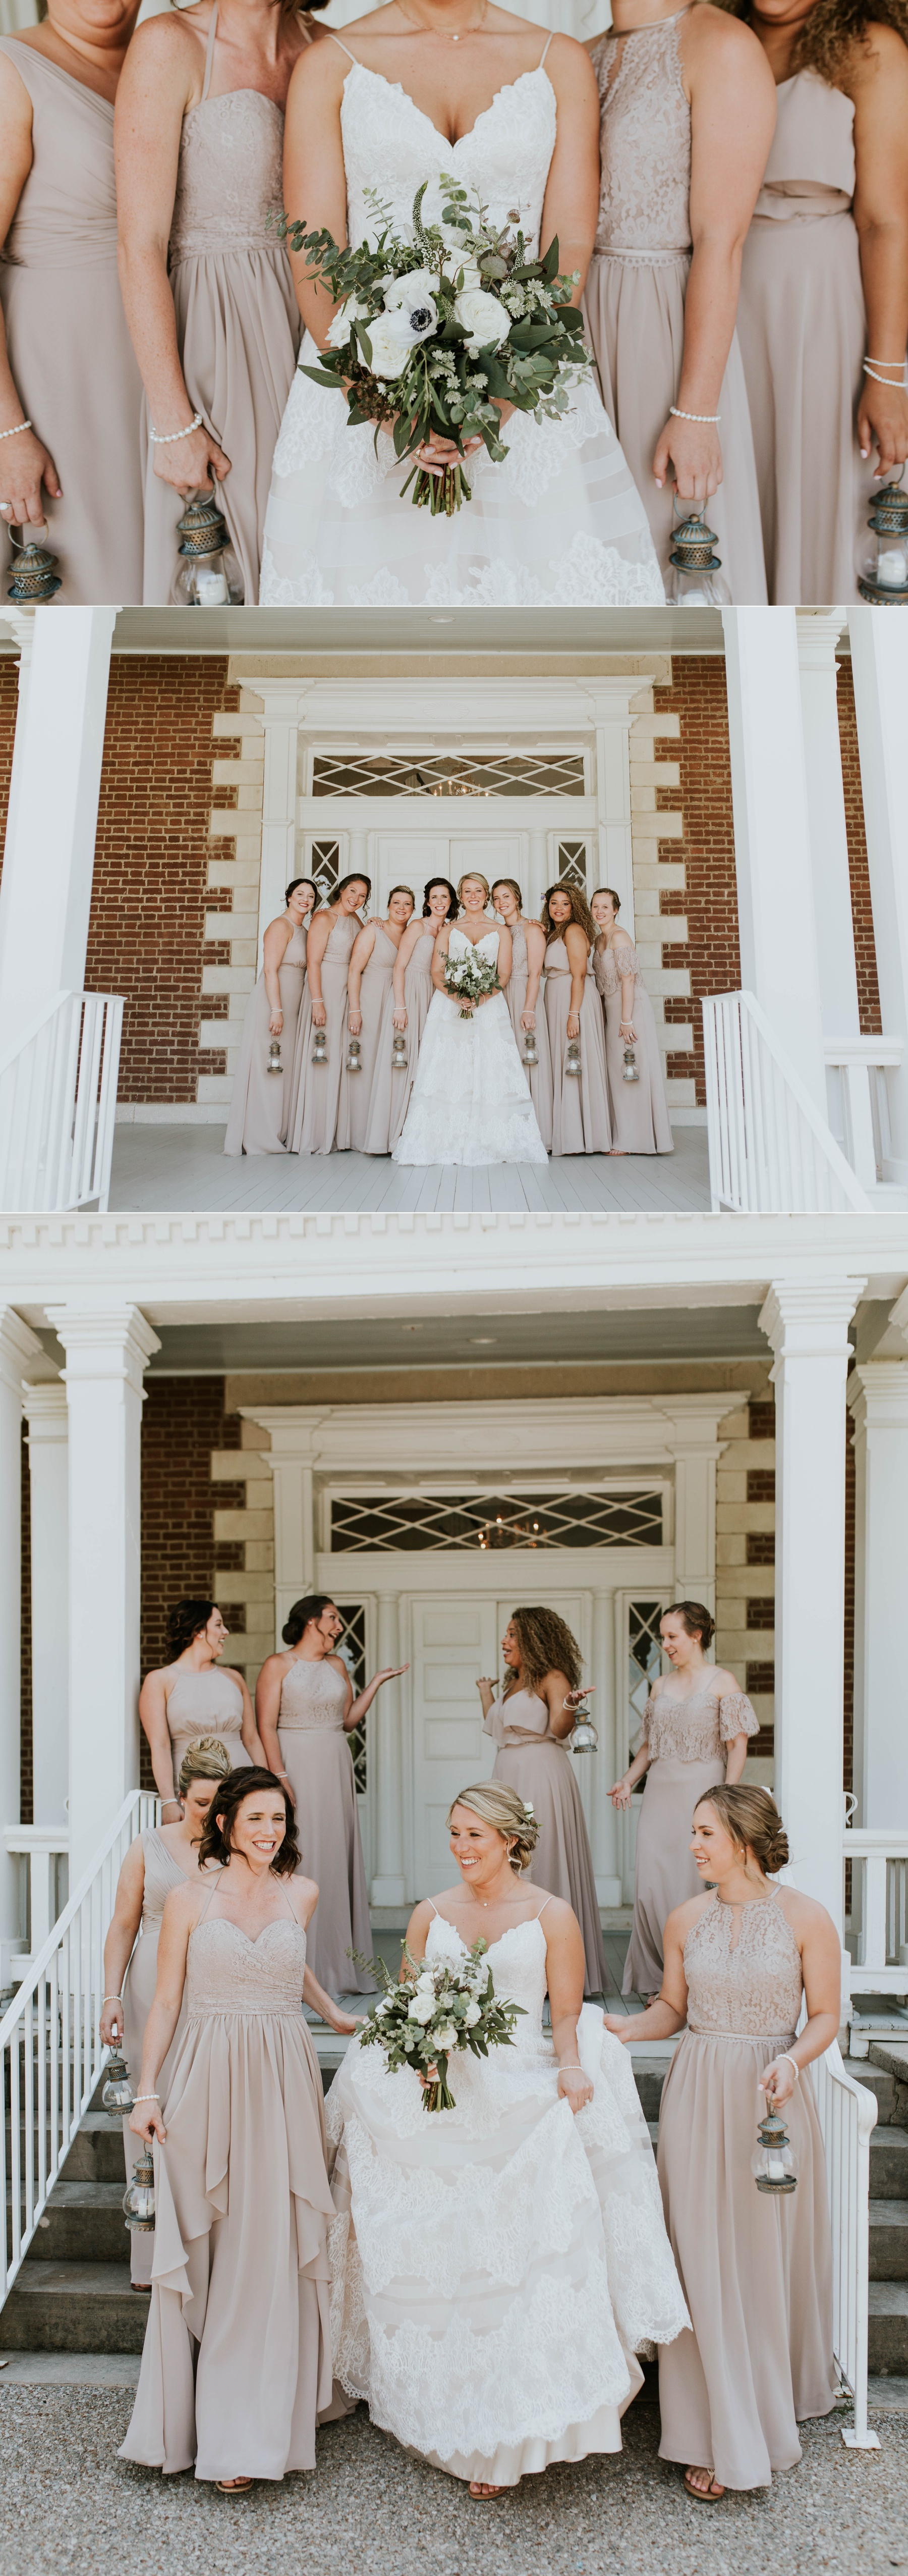 RavenswoodMansionWeddingThroughVictoriasLens11.jpg